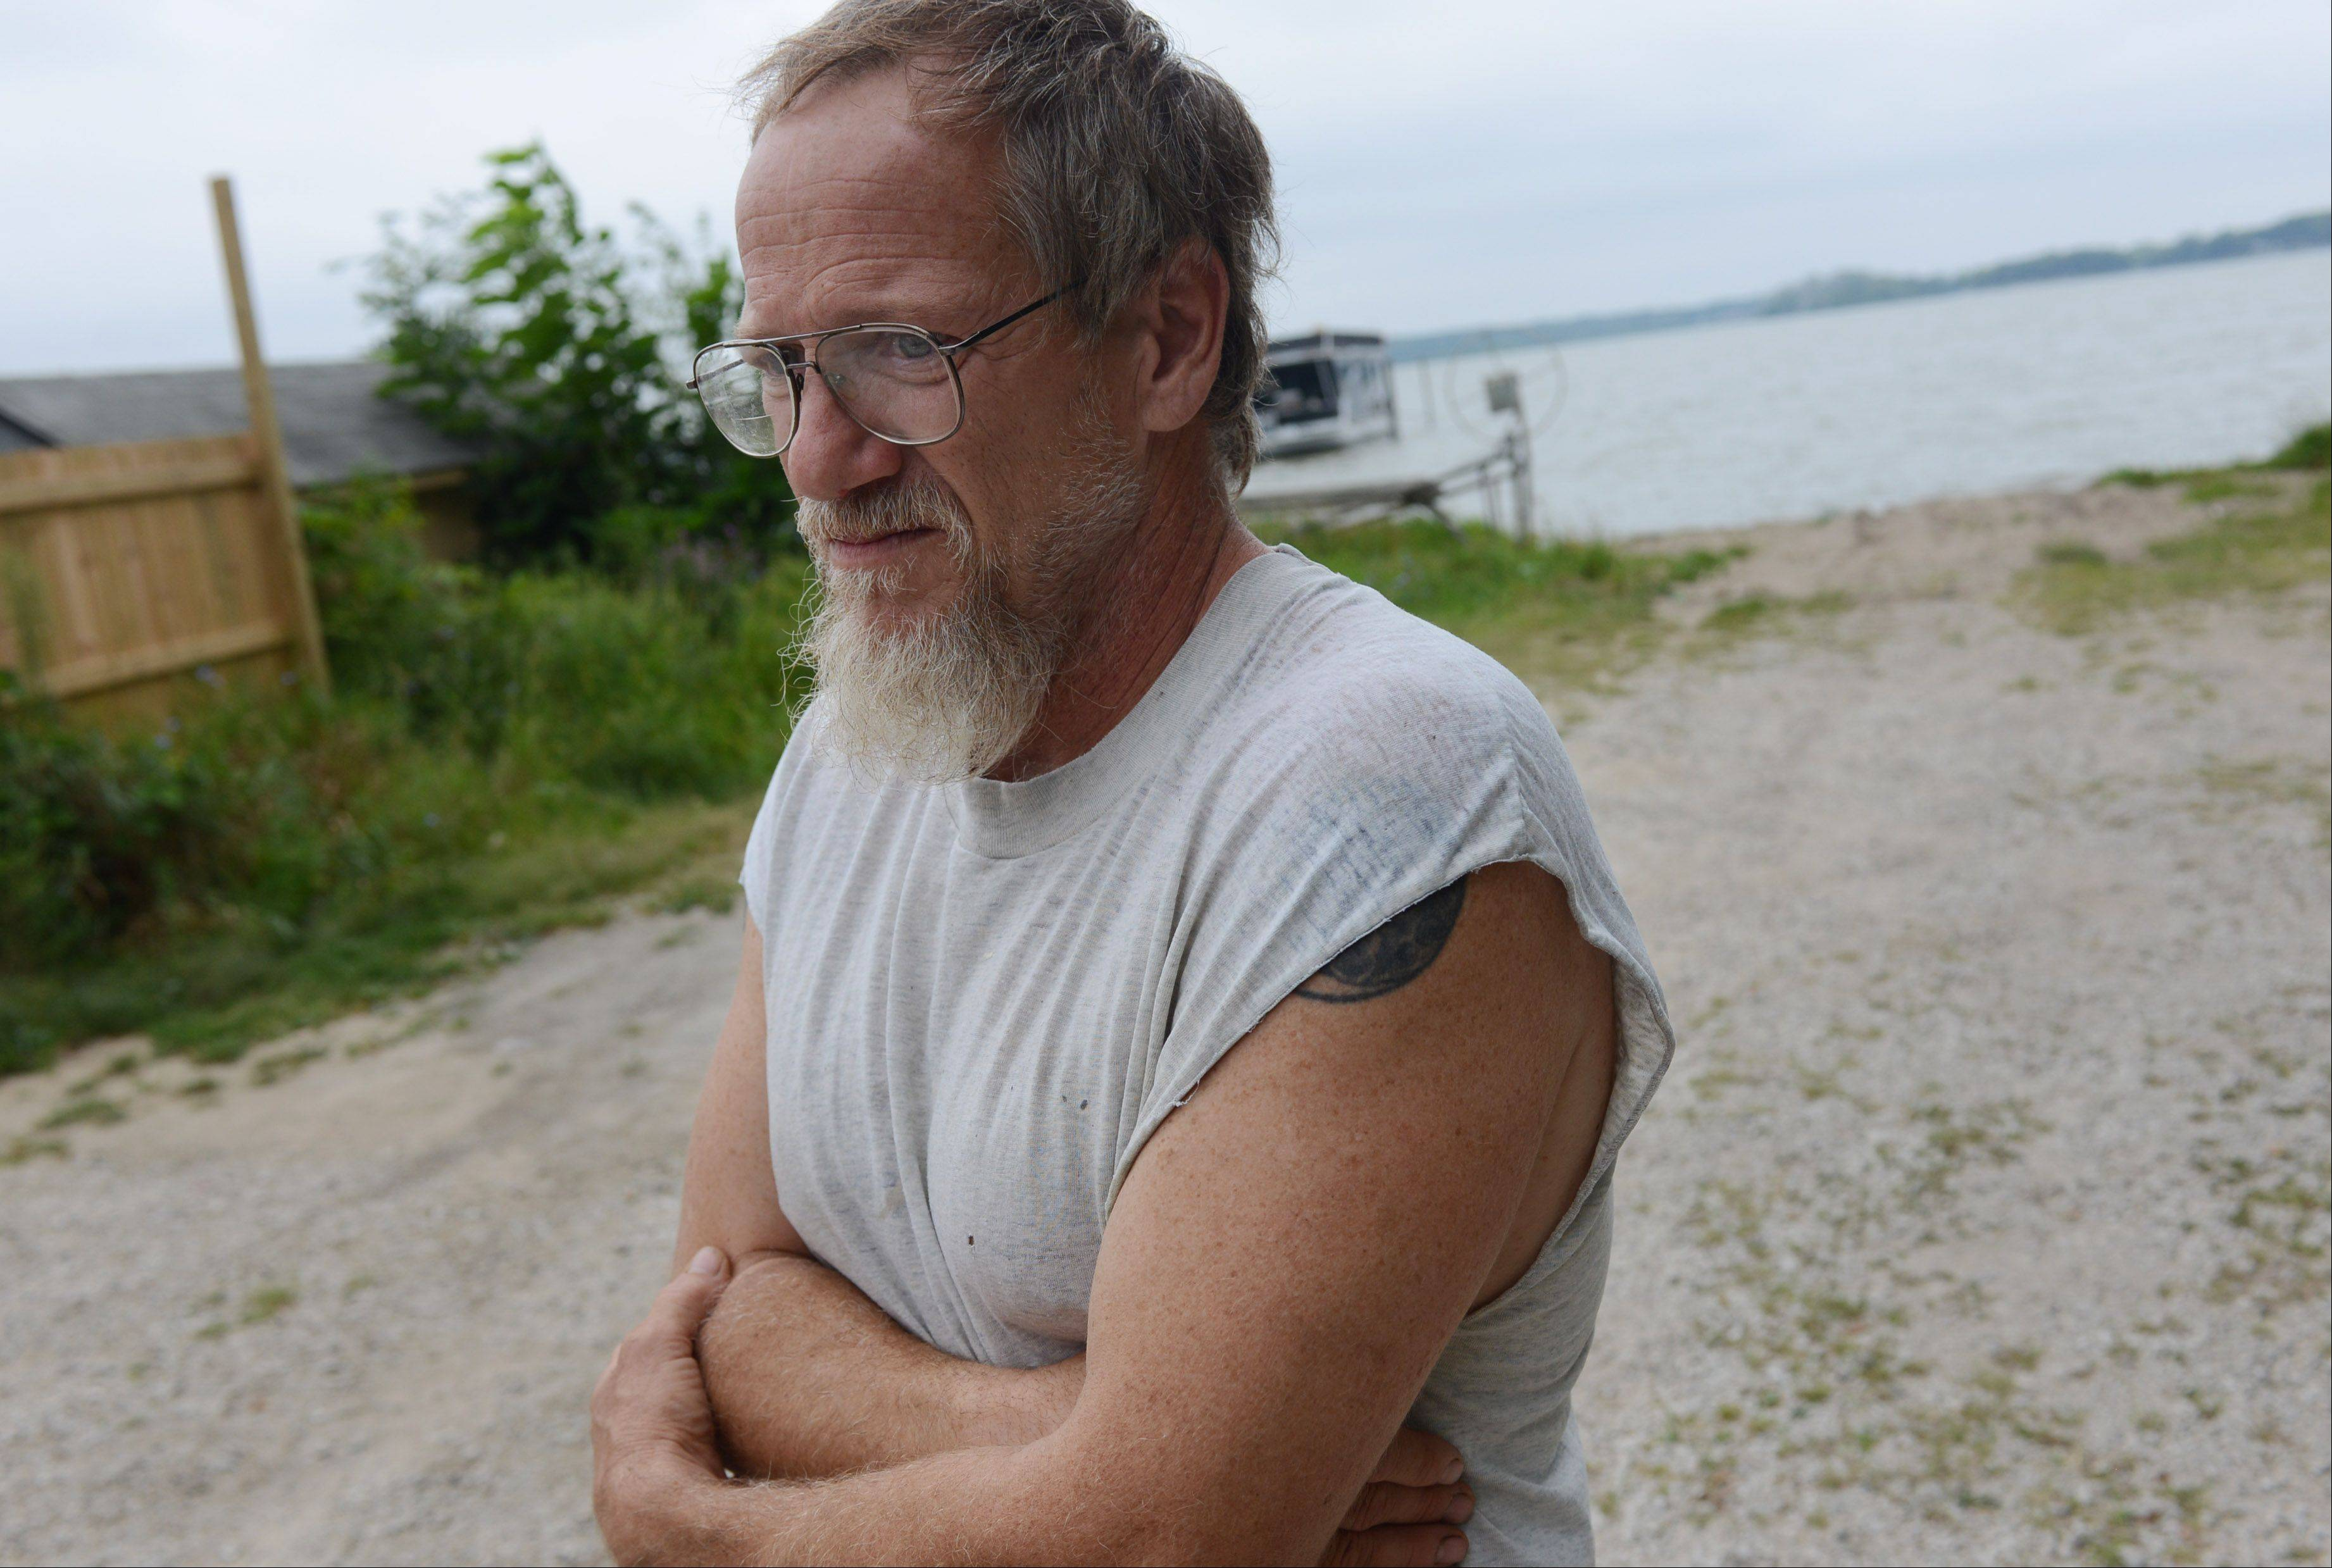 Ingleside resident Jim Zettlemoyer witnessed rescue crews attempting to revive a 9-year-old girl who had drowned near a boat launch at Stormy Monday bar in Ingleside Tuesday evening.